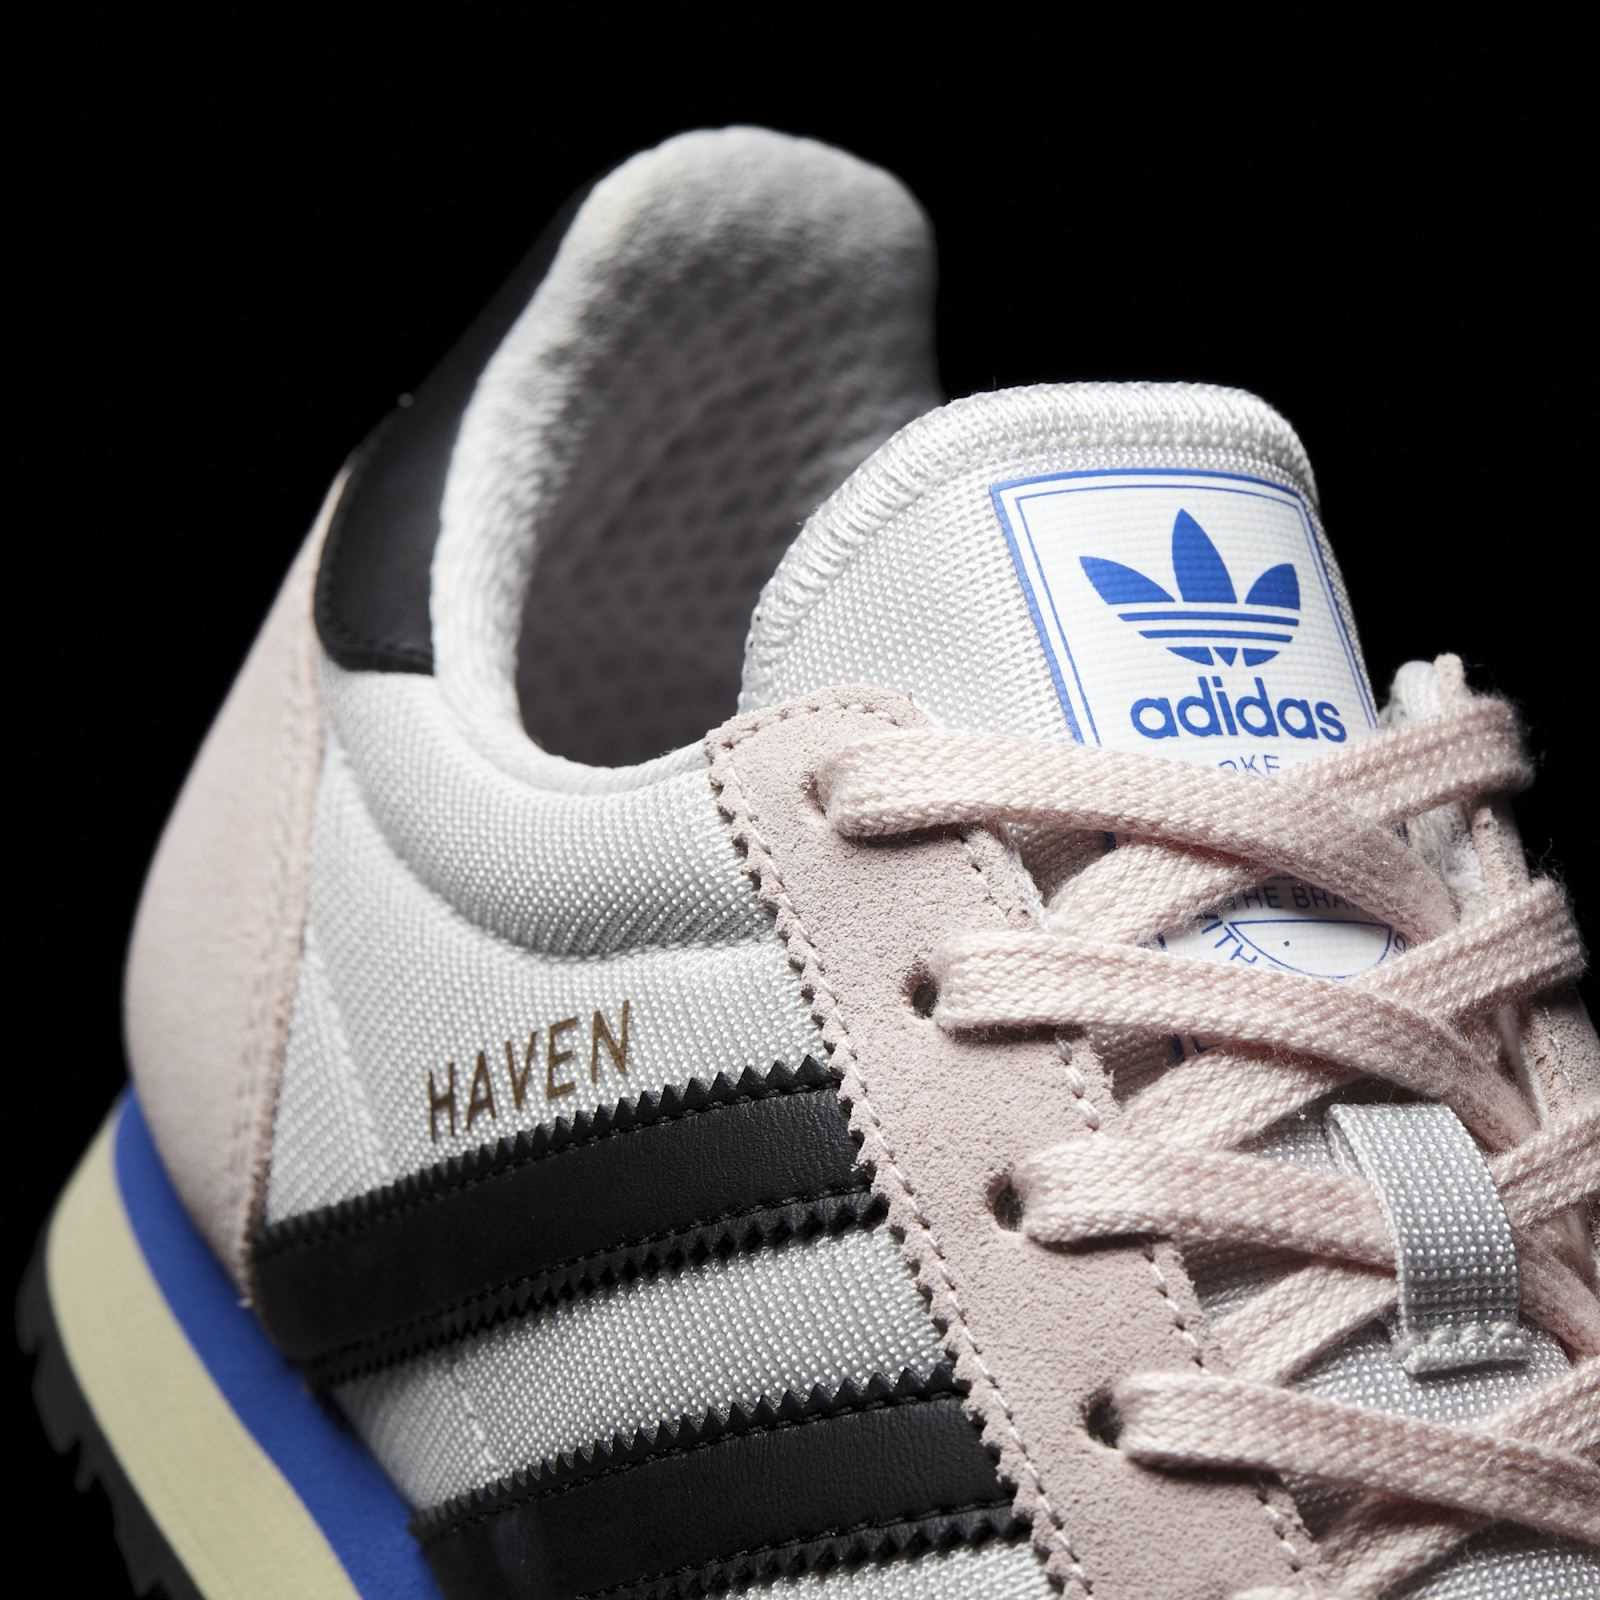 adidas originals haven - zapatillas